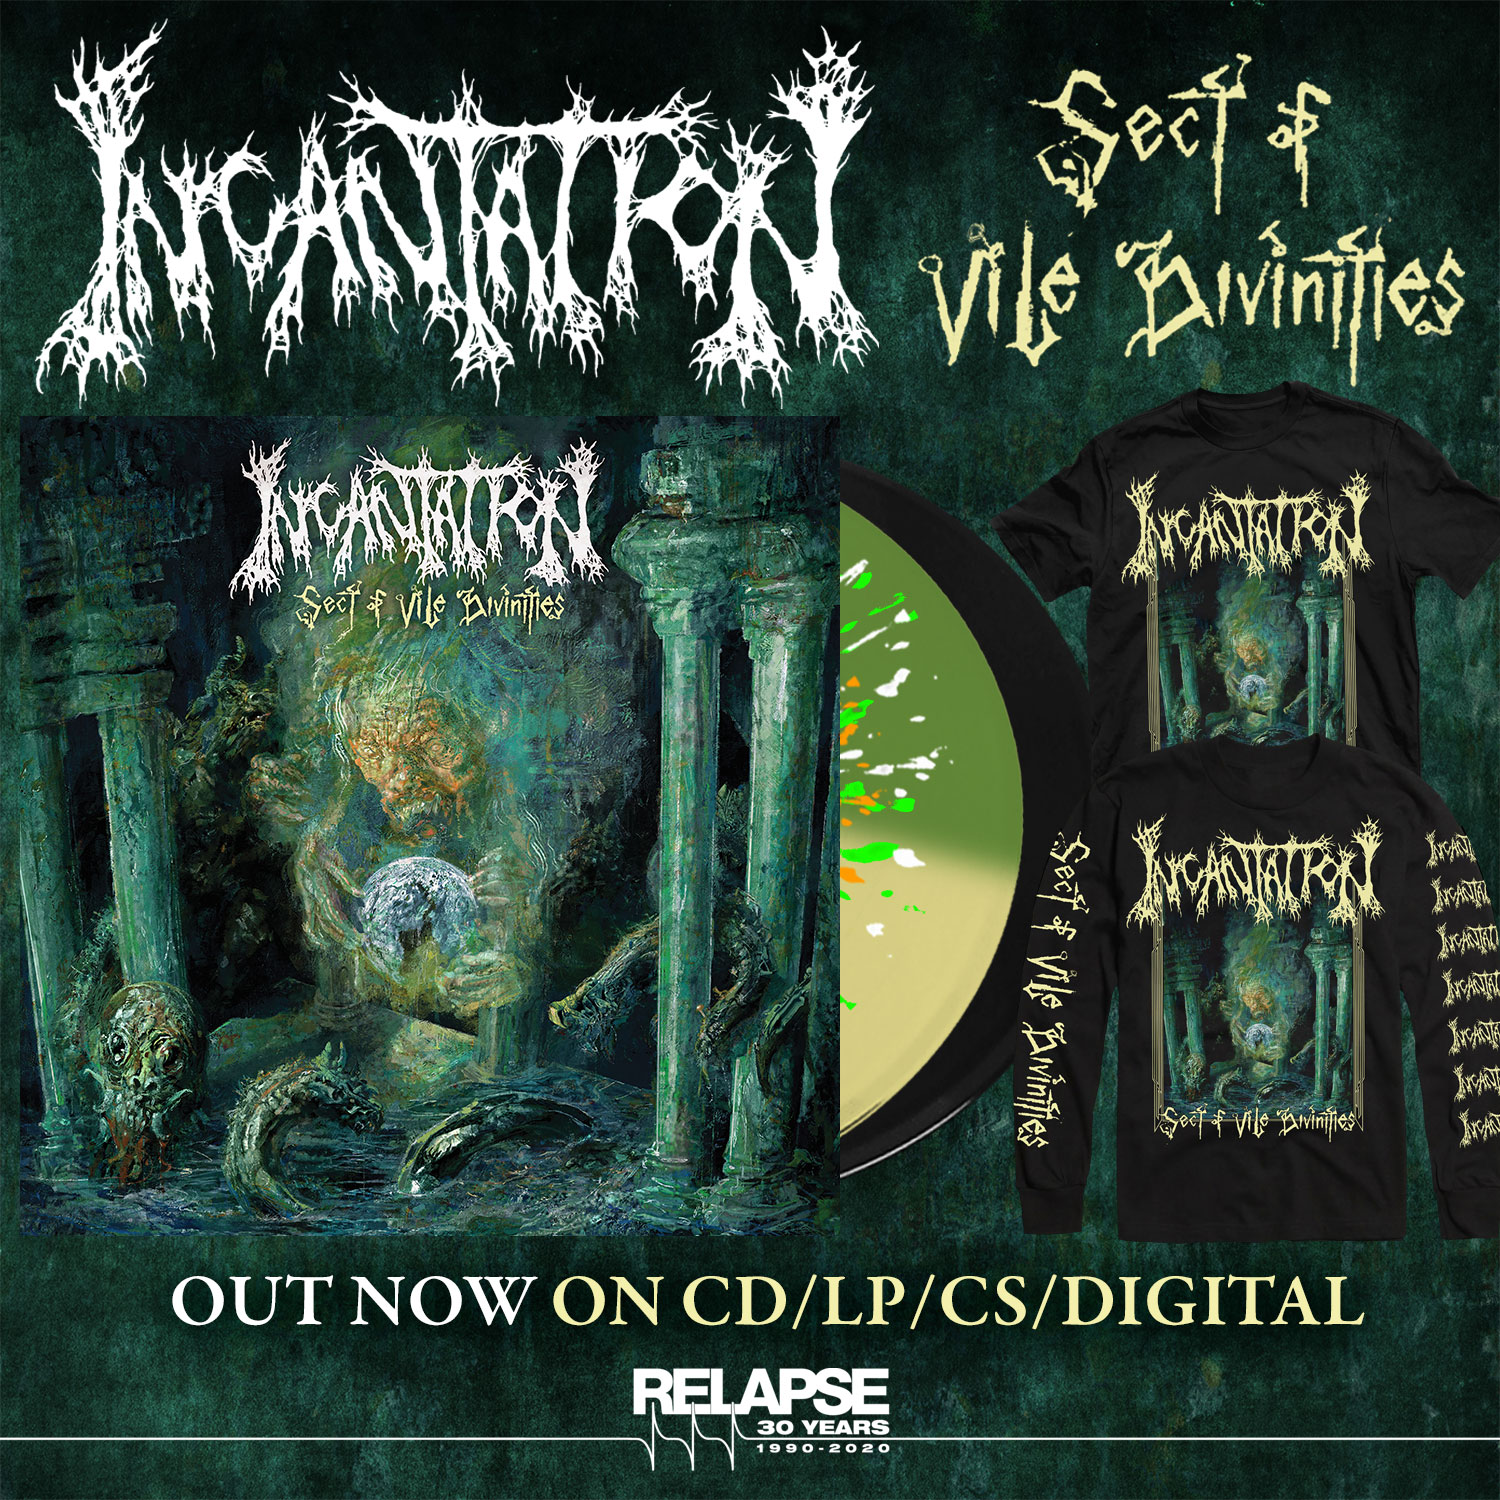 incantation-sect-of-vile-divinities-death-metal